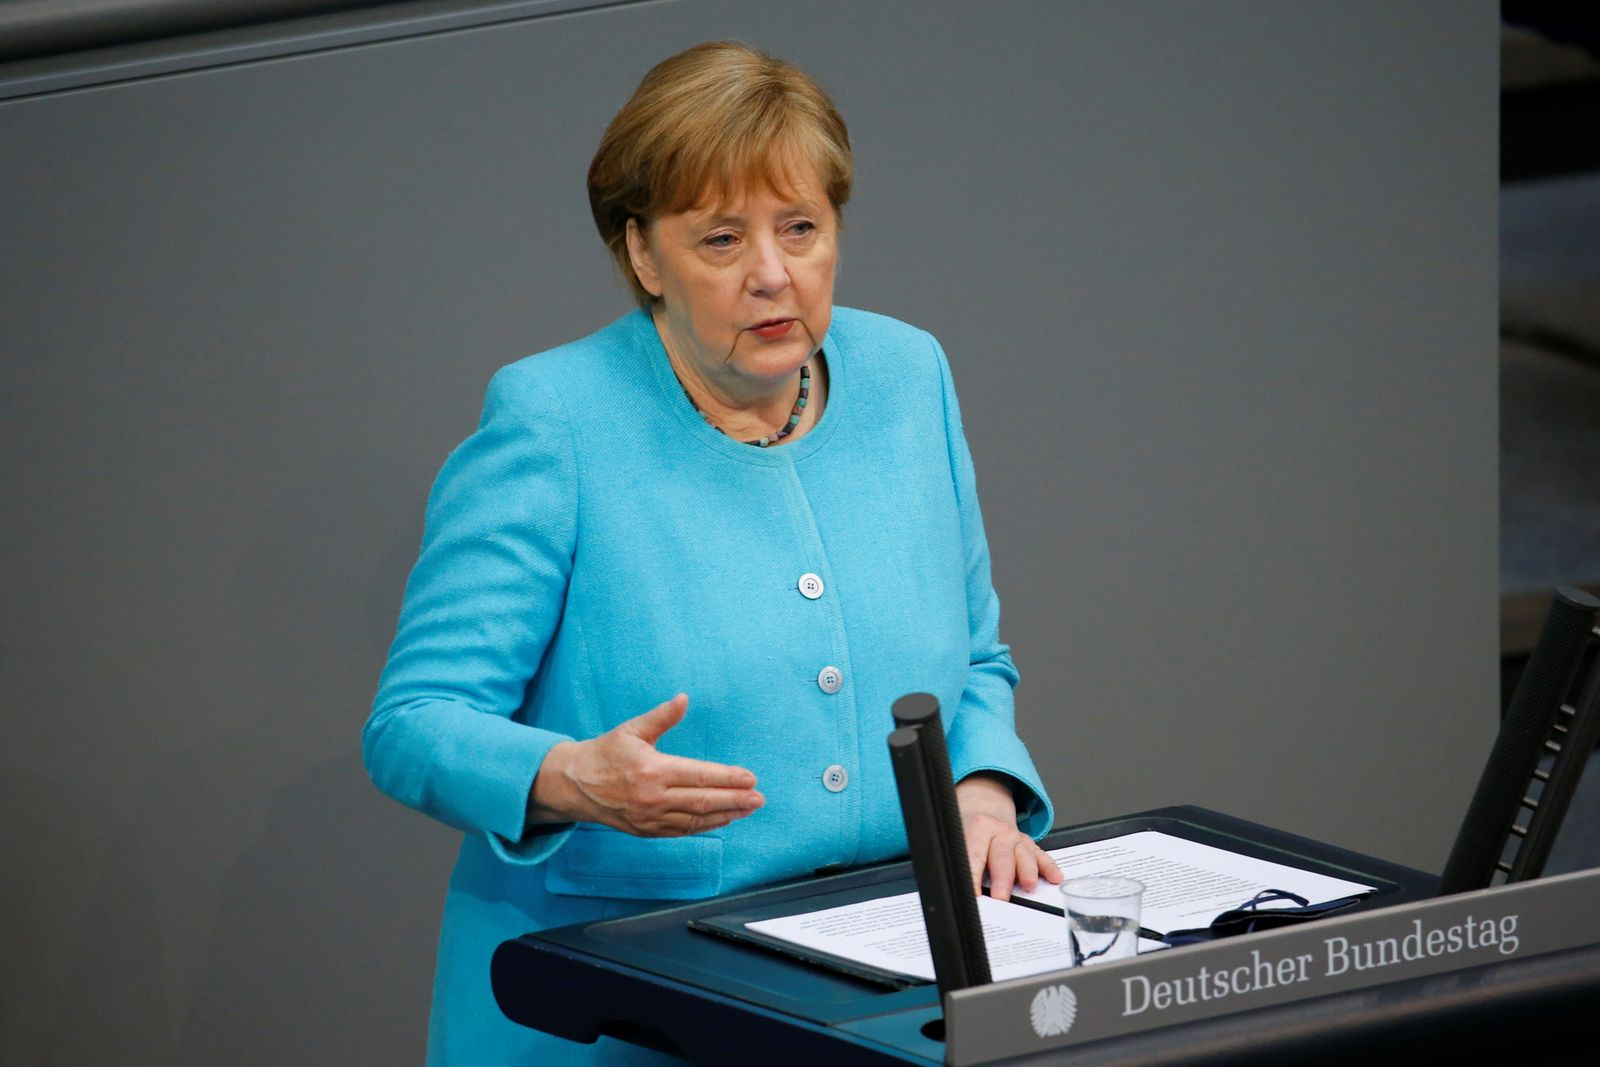 German government declaration on the upcoming European Council meeting at the Bundestag in Berlin